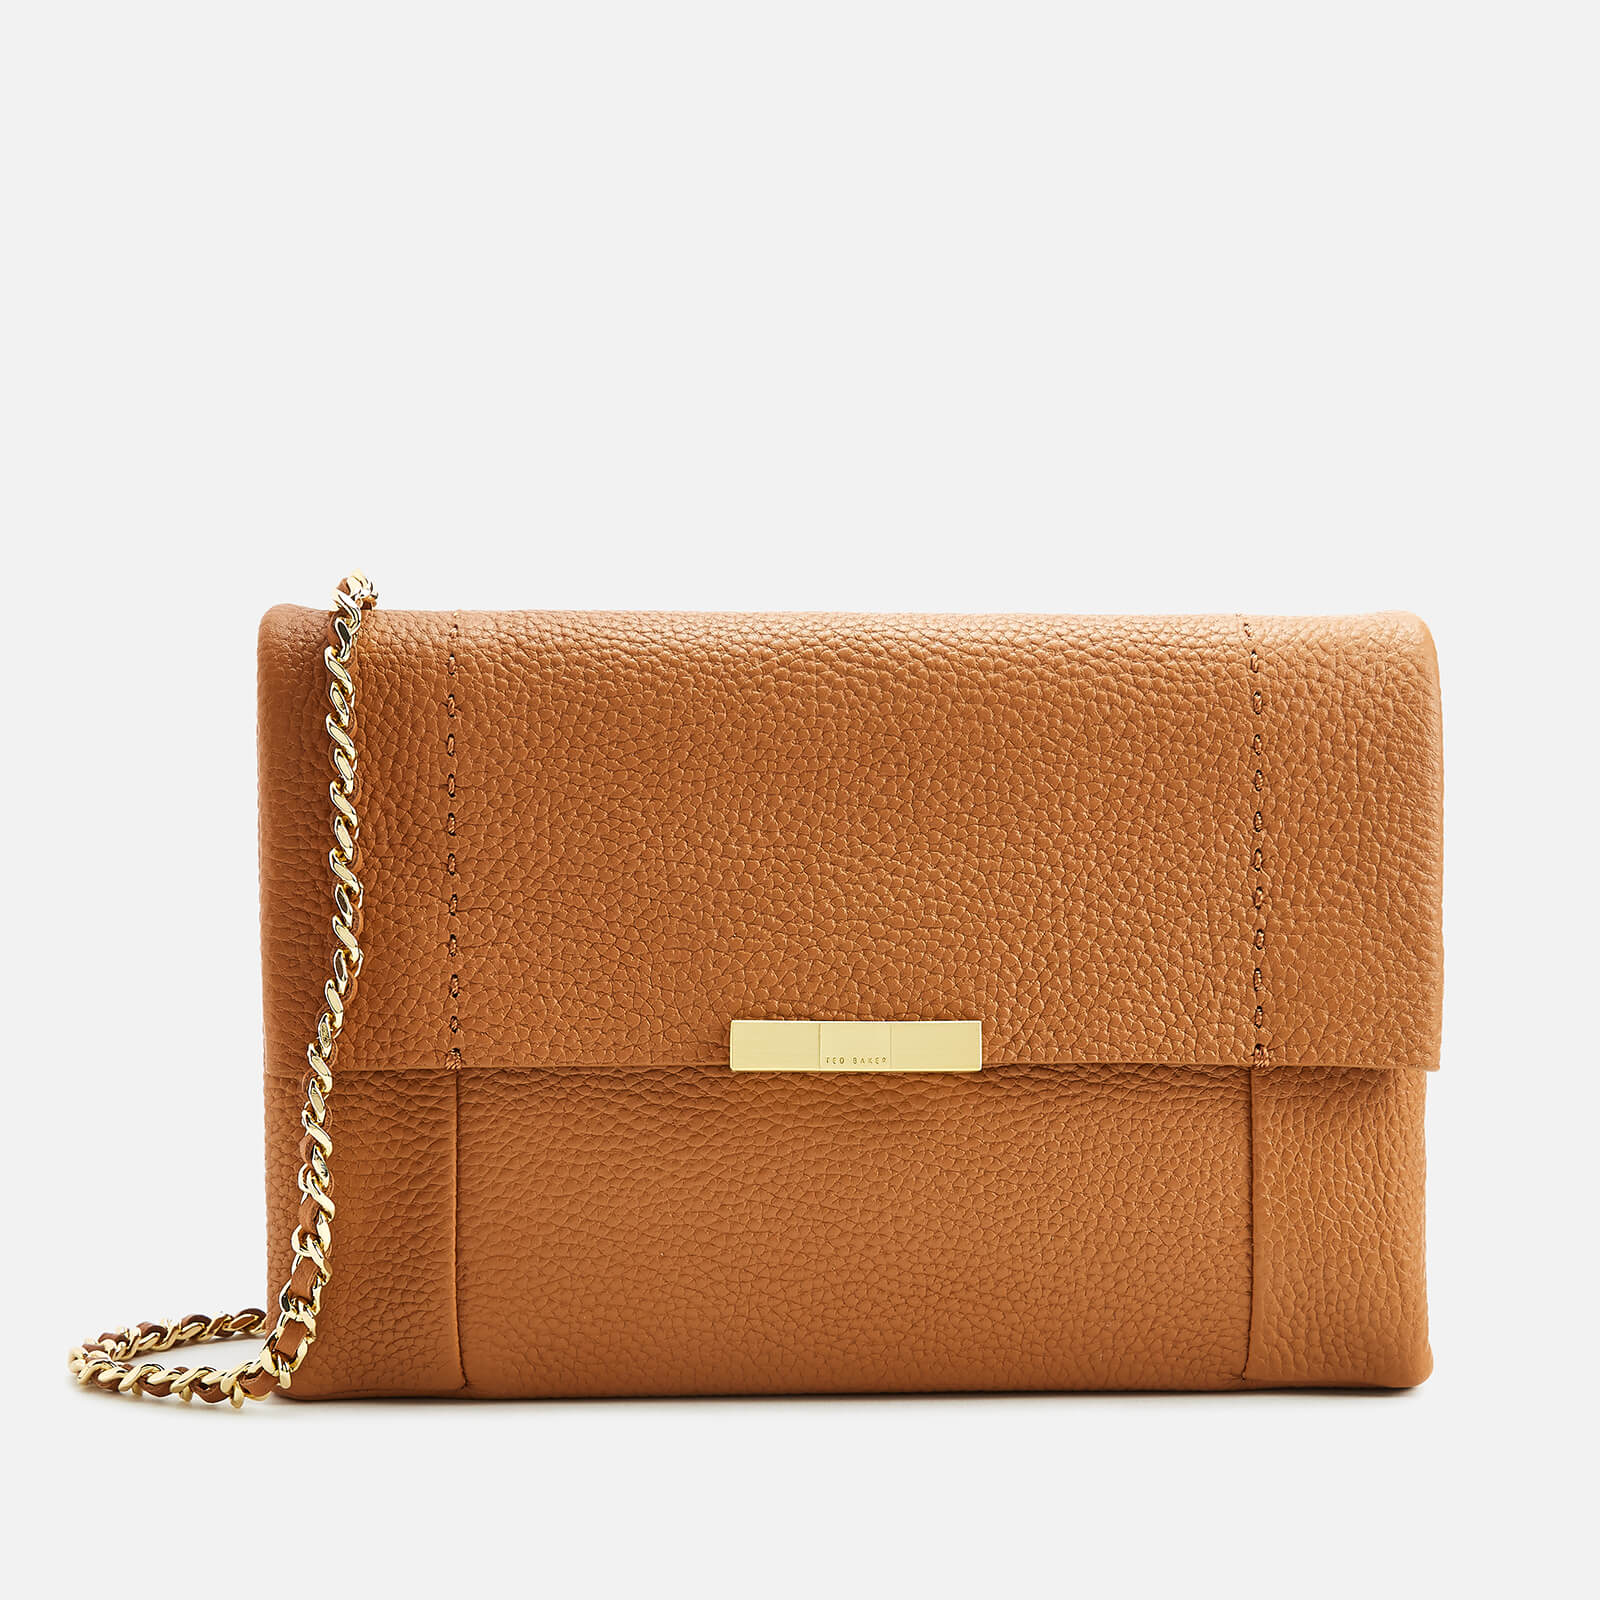 75c1d4c3543 Ted Baker Women's Clarria Bow Detail Cross Body Bag - Tan Womens  Accessories | TheHut.com